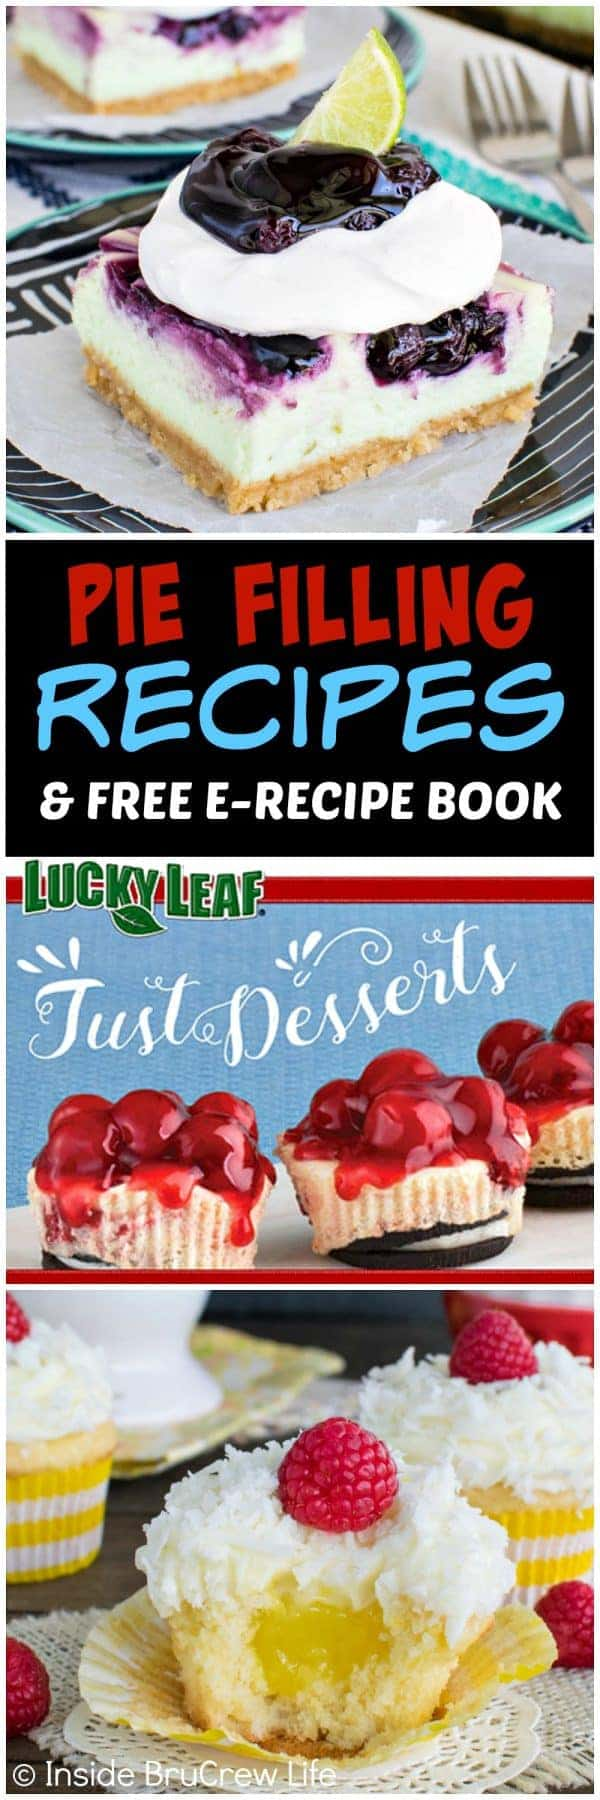 Pie Filling Recipes and Free E-Recipe Book - find these easy pie filling recipes in the free e-recipe book provided by Lucky Leaf #piefilling #pie #dessert #sponsored #easy #recipes